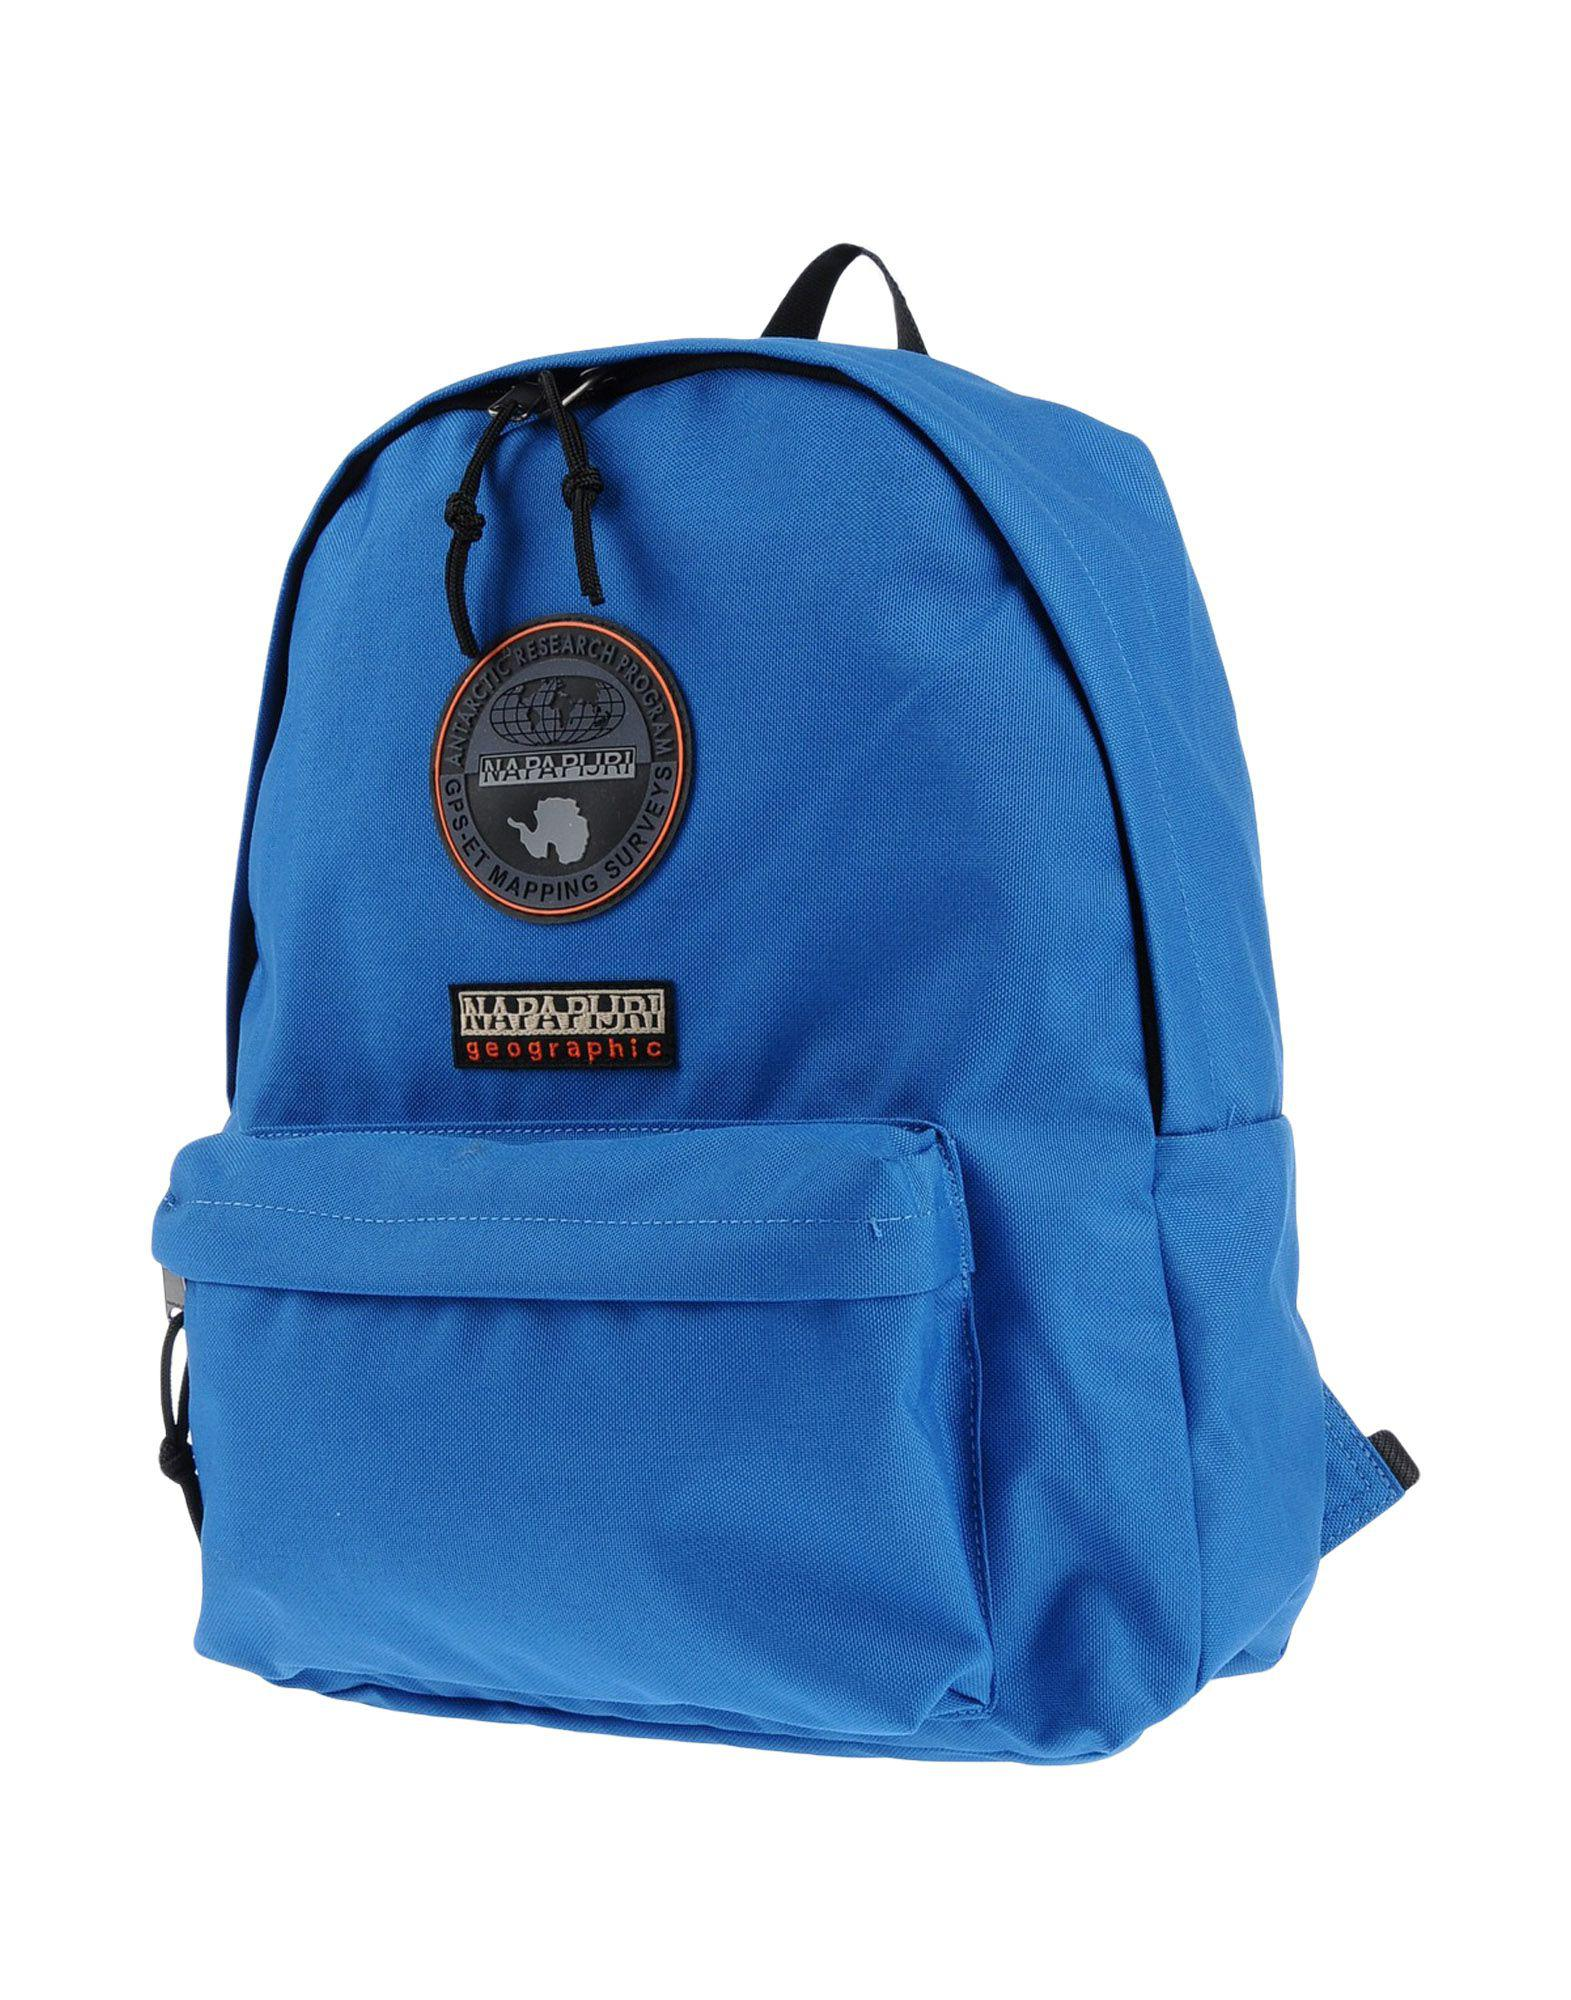 Backpacks Fullscreen Lyst Bum View Blue amp  Napapijri Bags FqaX5